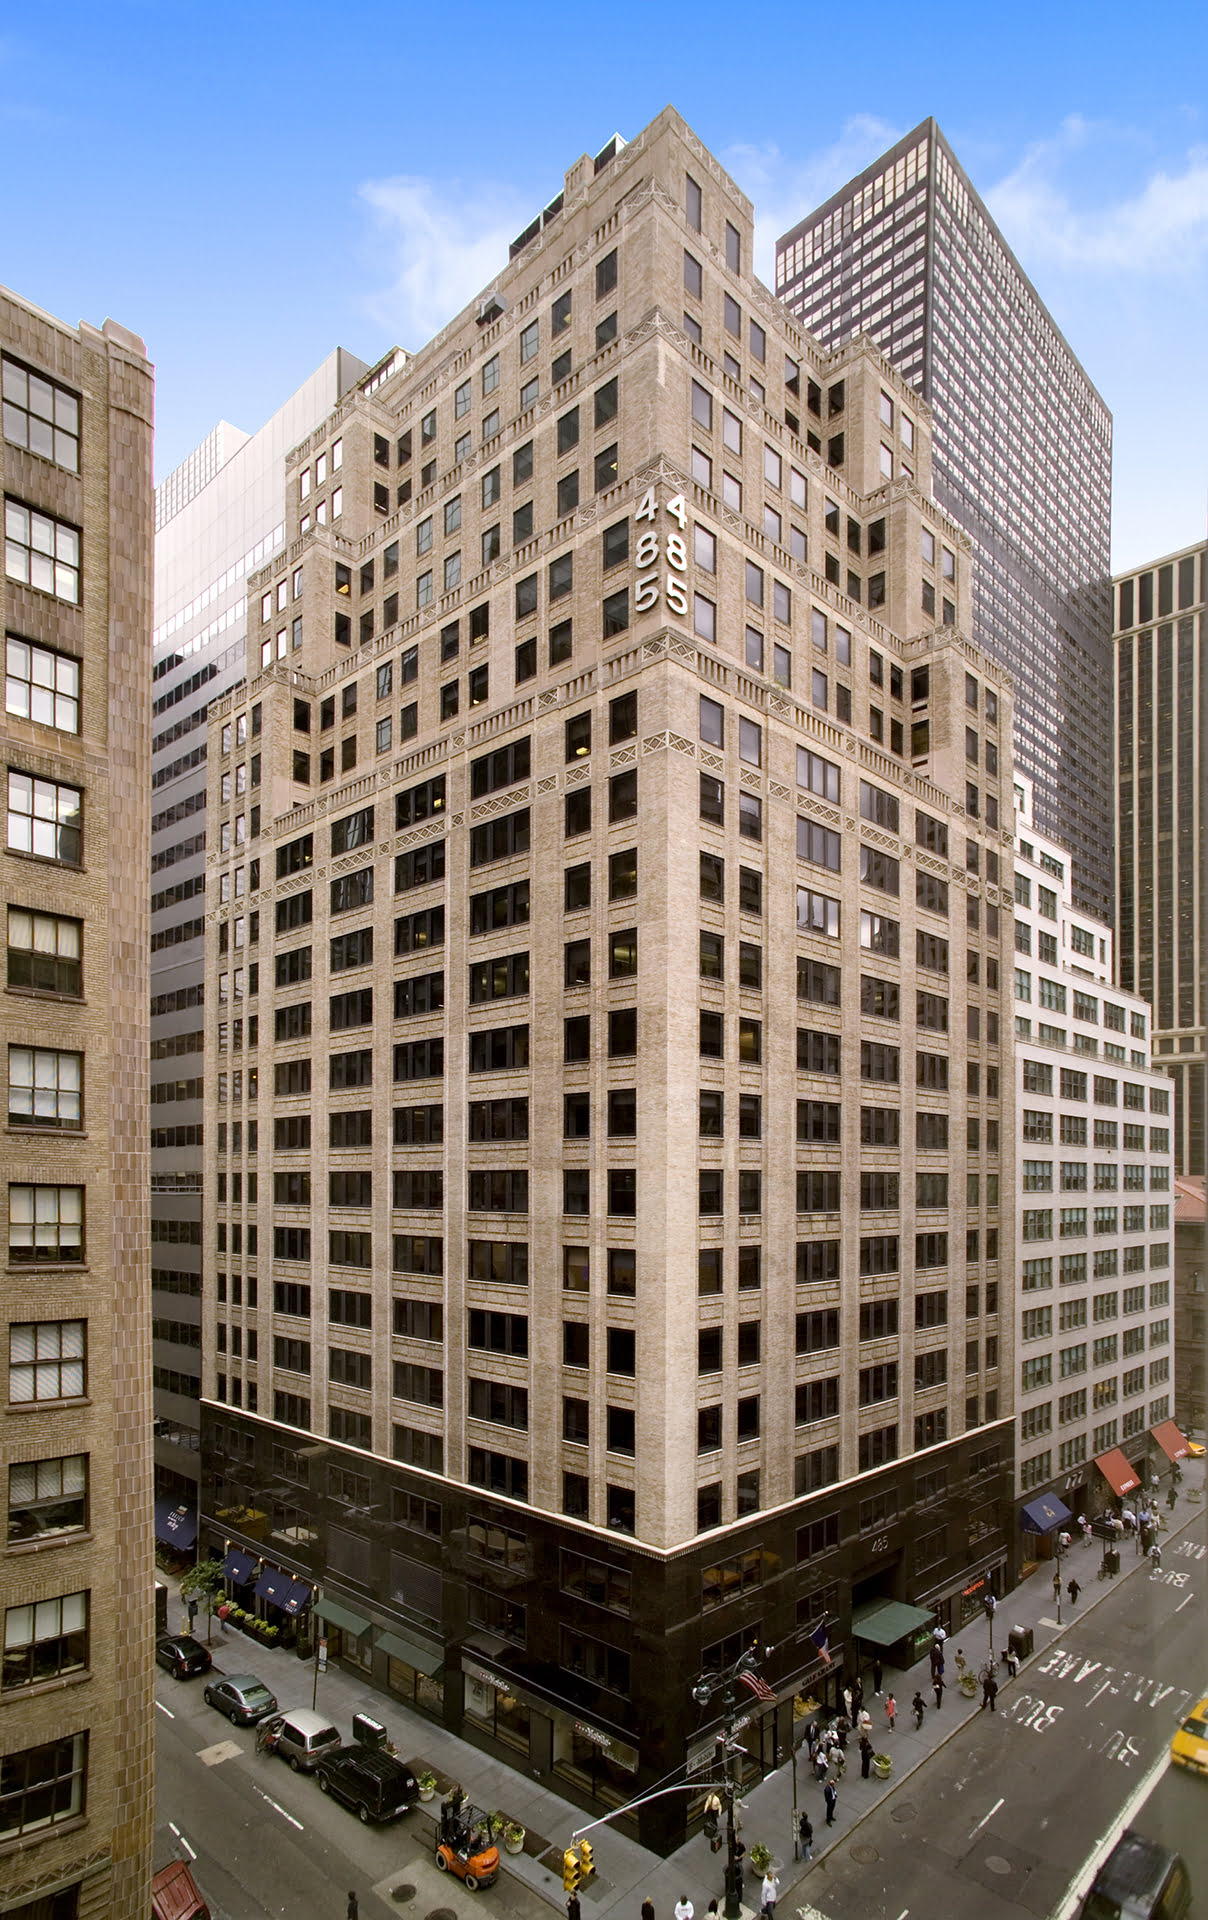 View of entire building at 485 Madison Avenue